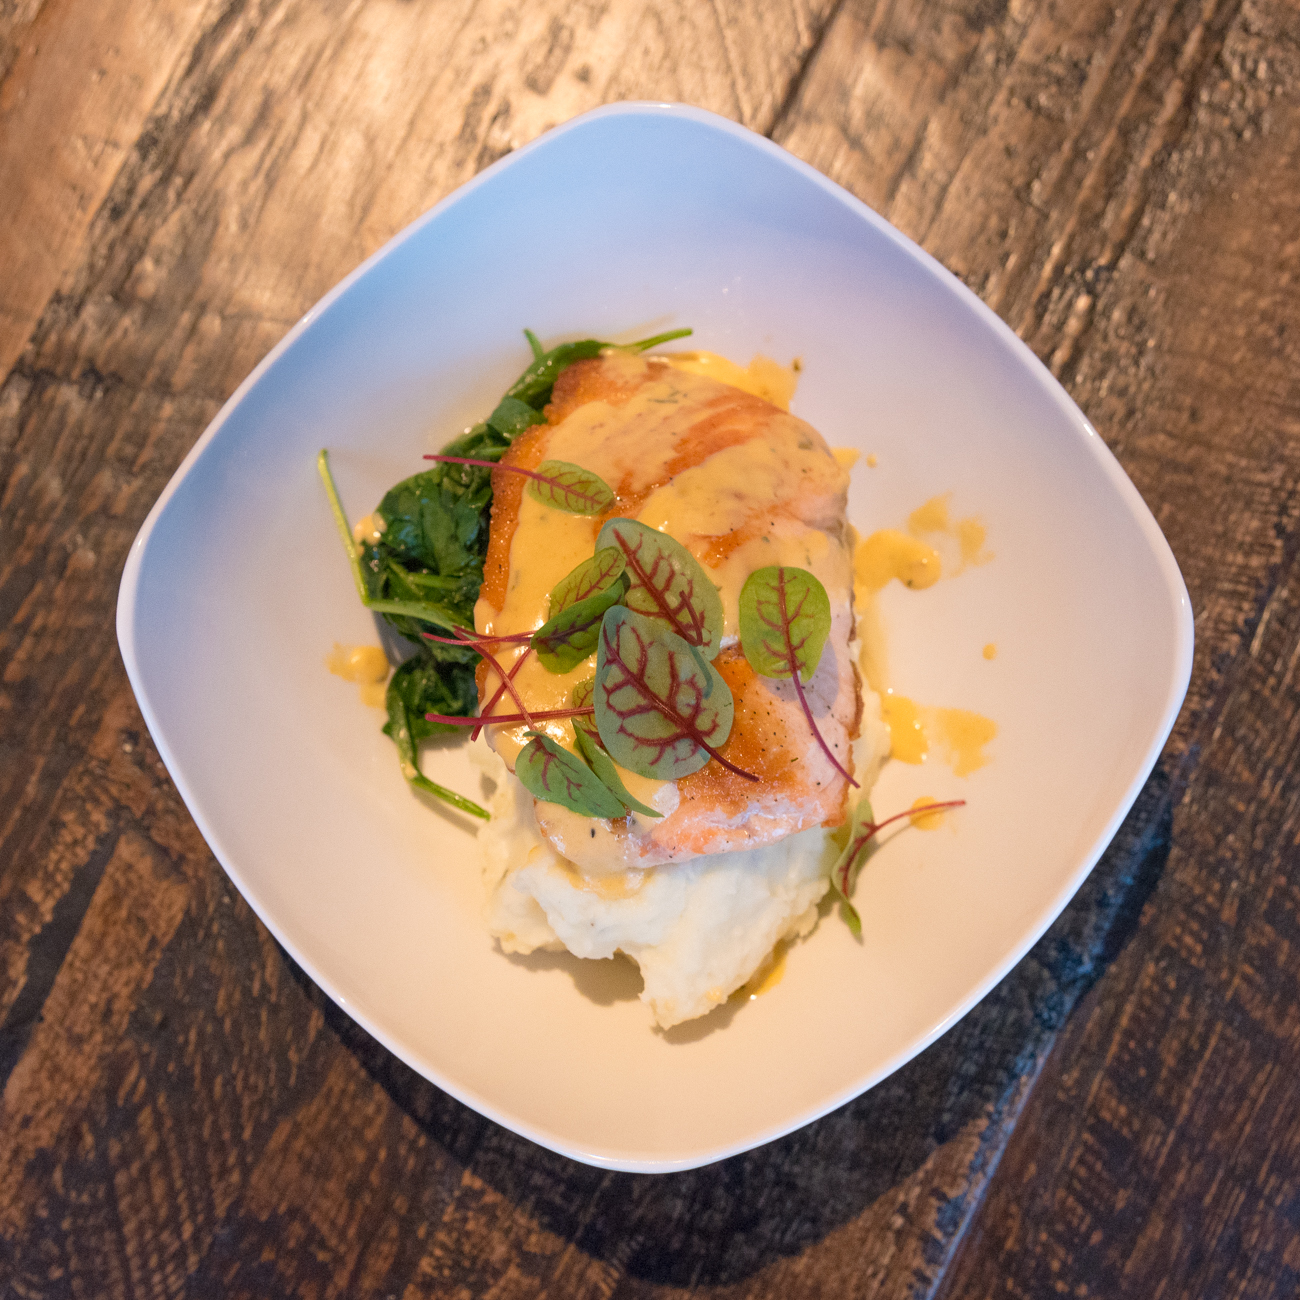 Salmon: Atlantic salmon, roasted garlic & thyme smashed potatoes, sauteed spinach, and lobster cream sauce / Image: Phil Armstrong, Cincinnati Refined // Published: 12.14.16